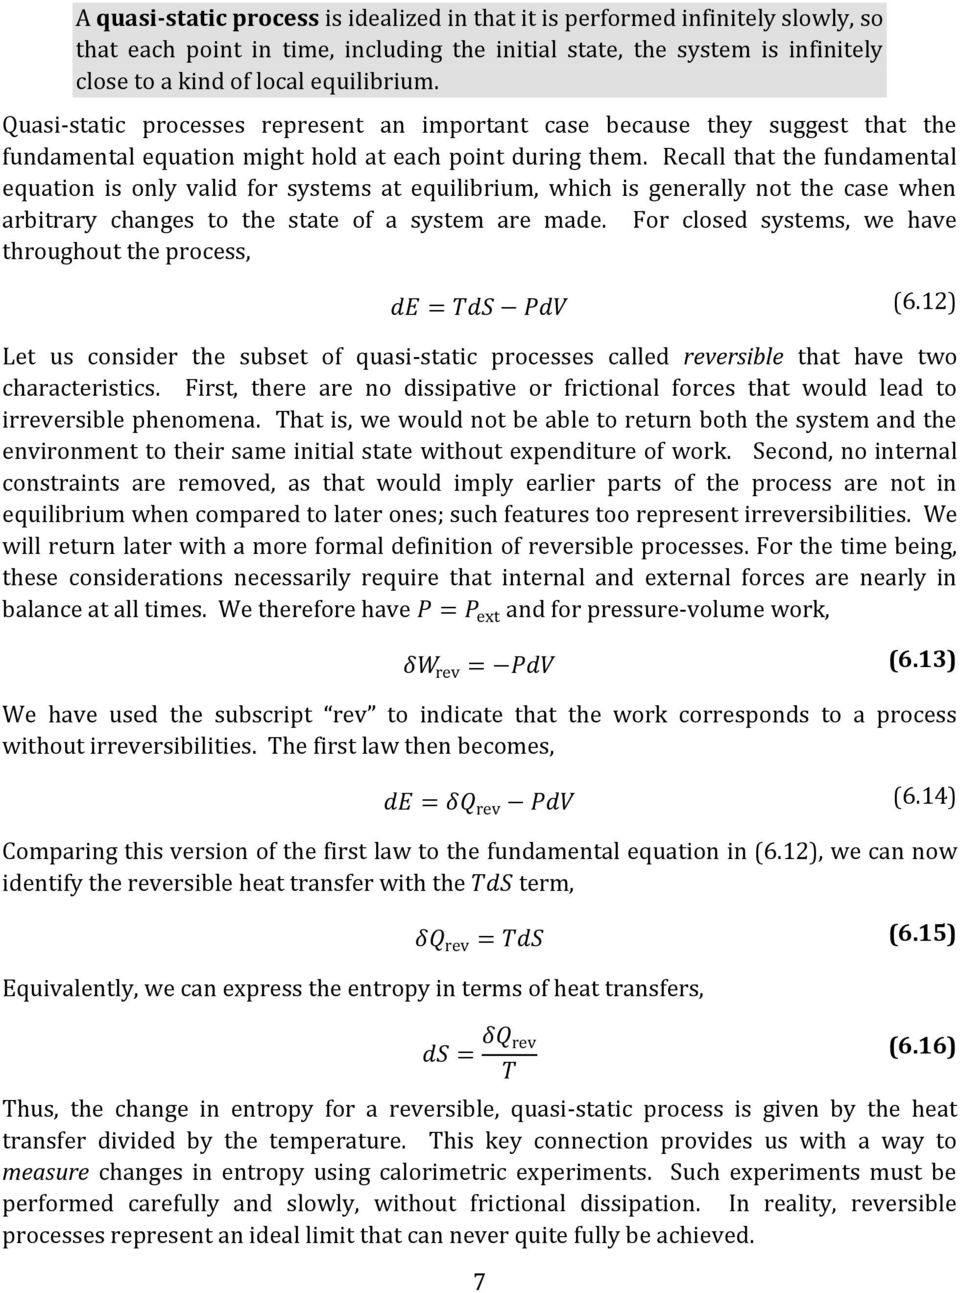 Recall that the fundamental equation is only valid for systems at equilibrium, which is generally not the case when arbitrary changes to the state of a system are made.